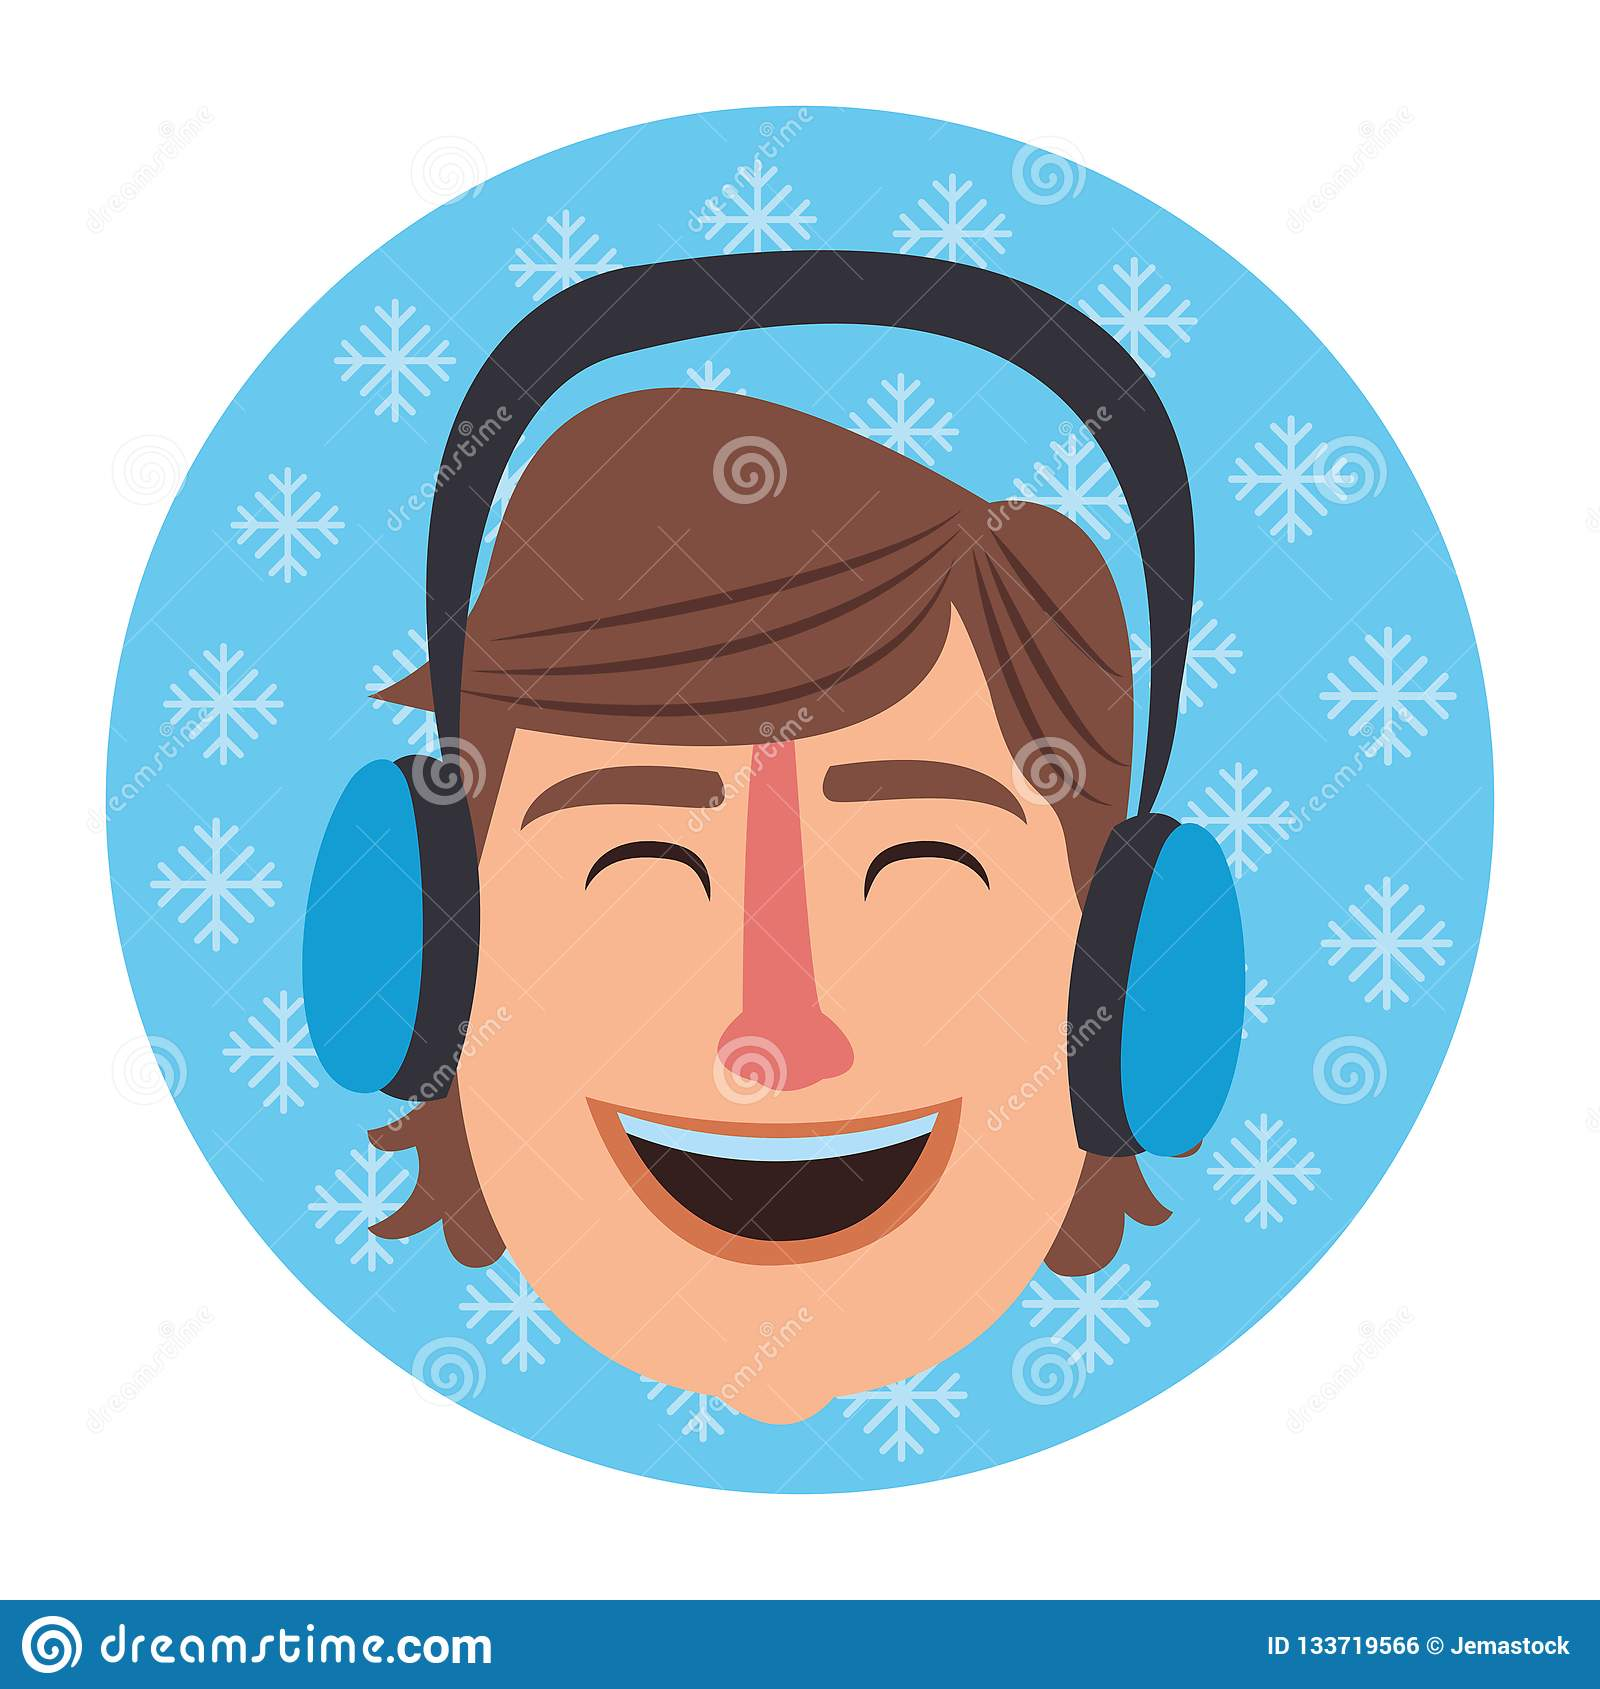 69150debb657c Man face smiling with winter earphones cartoon on snowflakes round icon  vector illustration graphic design